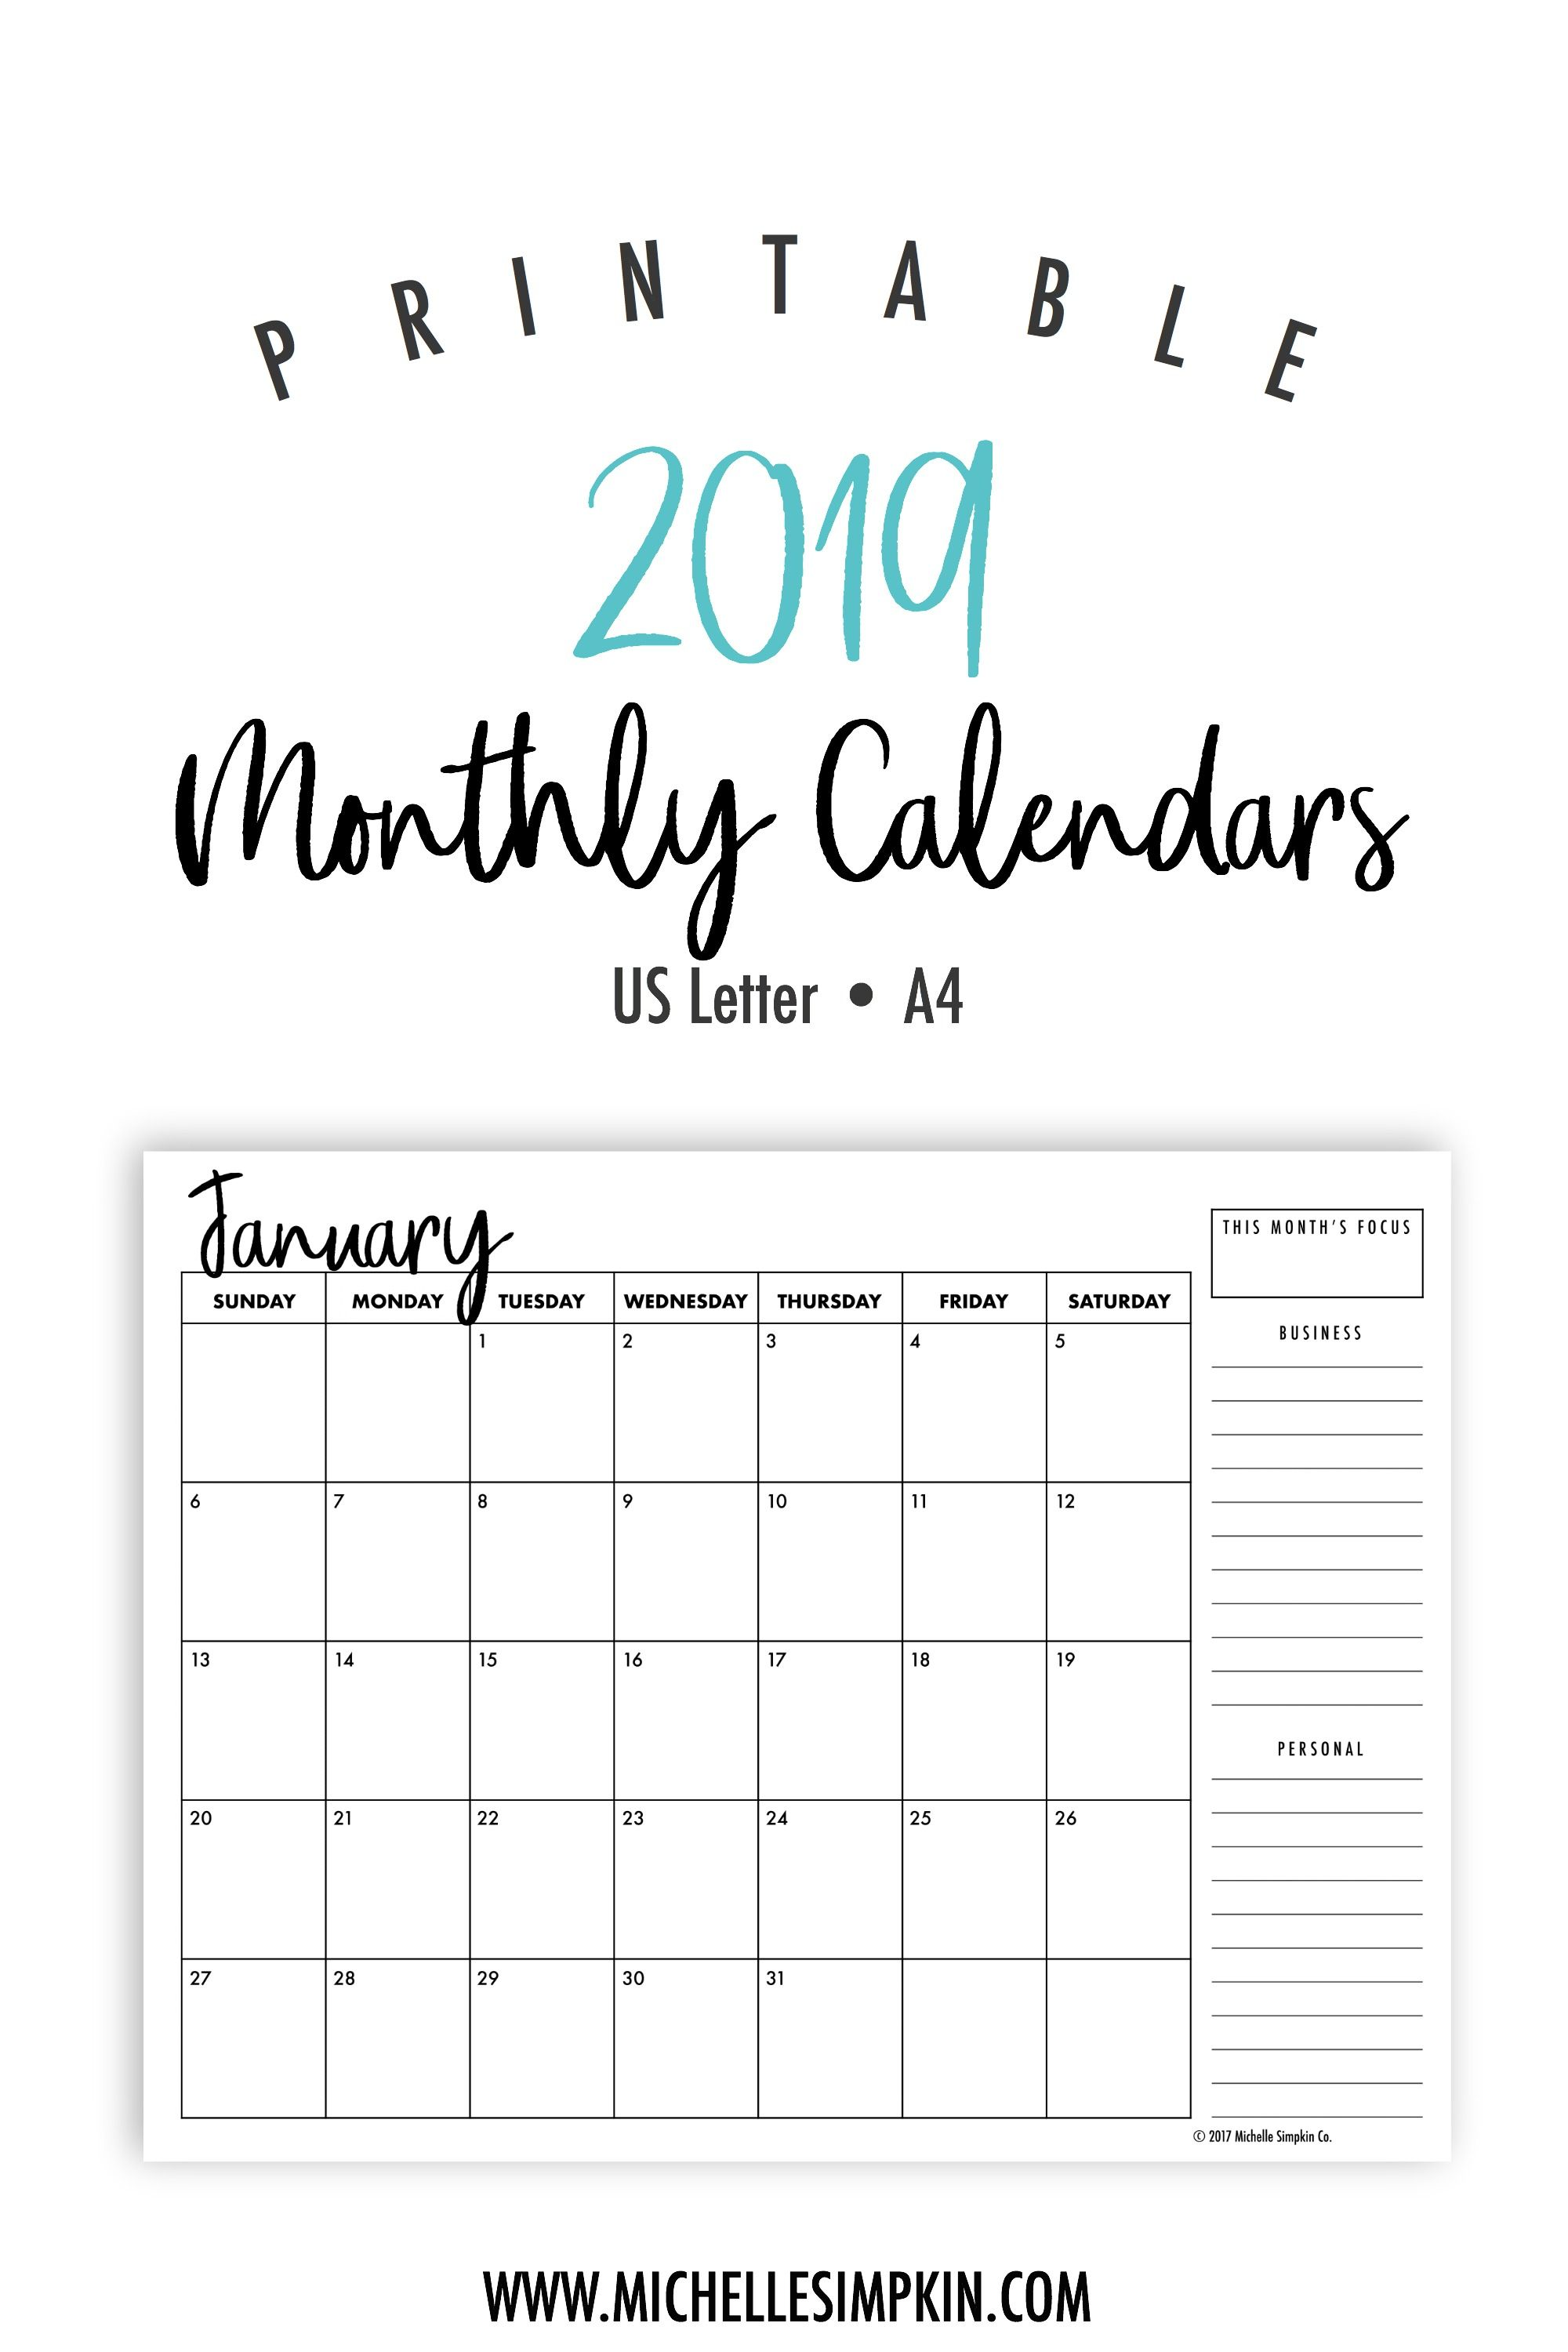 Calendar 2019 Monthly 2019 Printable Monthly Calendars • Landscape • US Letter • A4